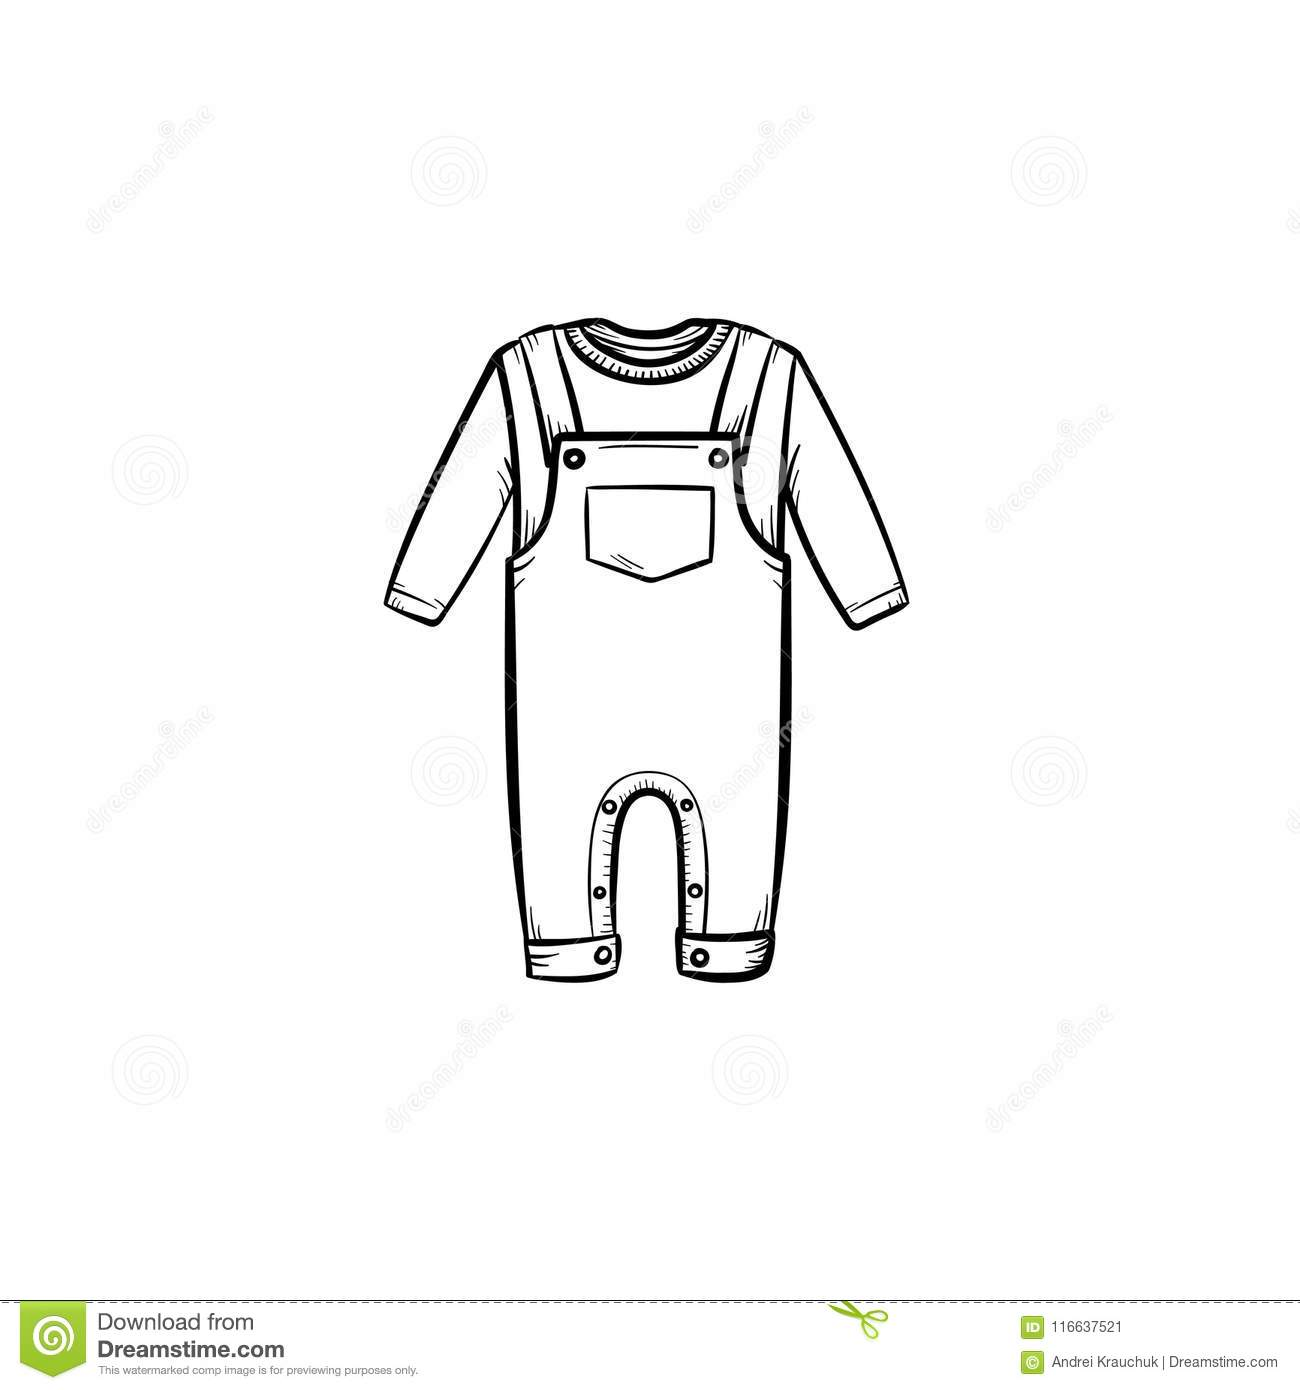 cf67009e1b67 Baby Shirt And Pants Hand Drawn Outline Doodle Icon. Stock Vector ...